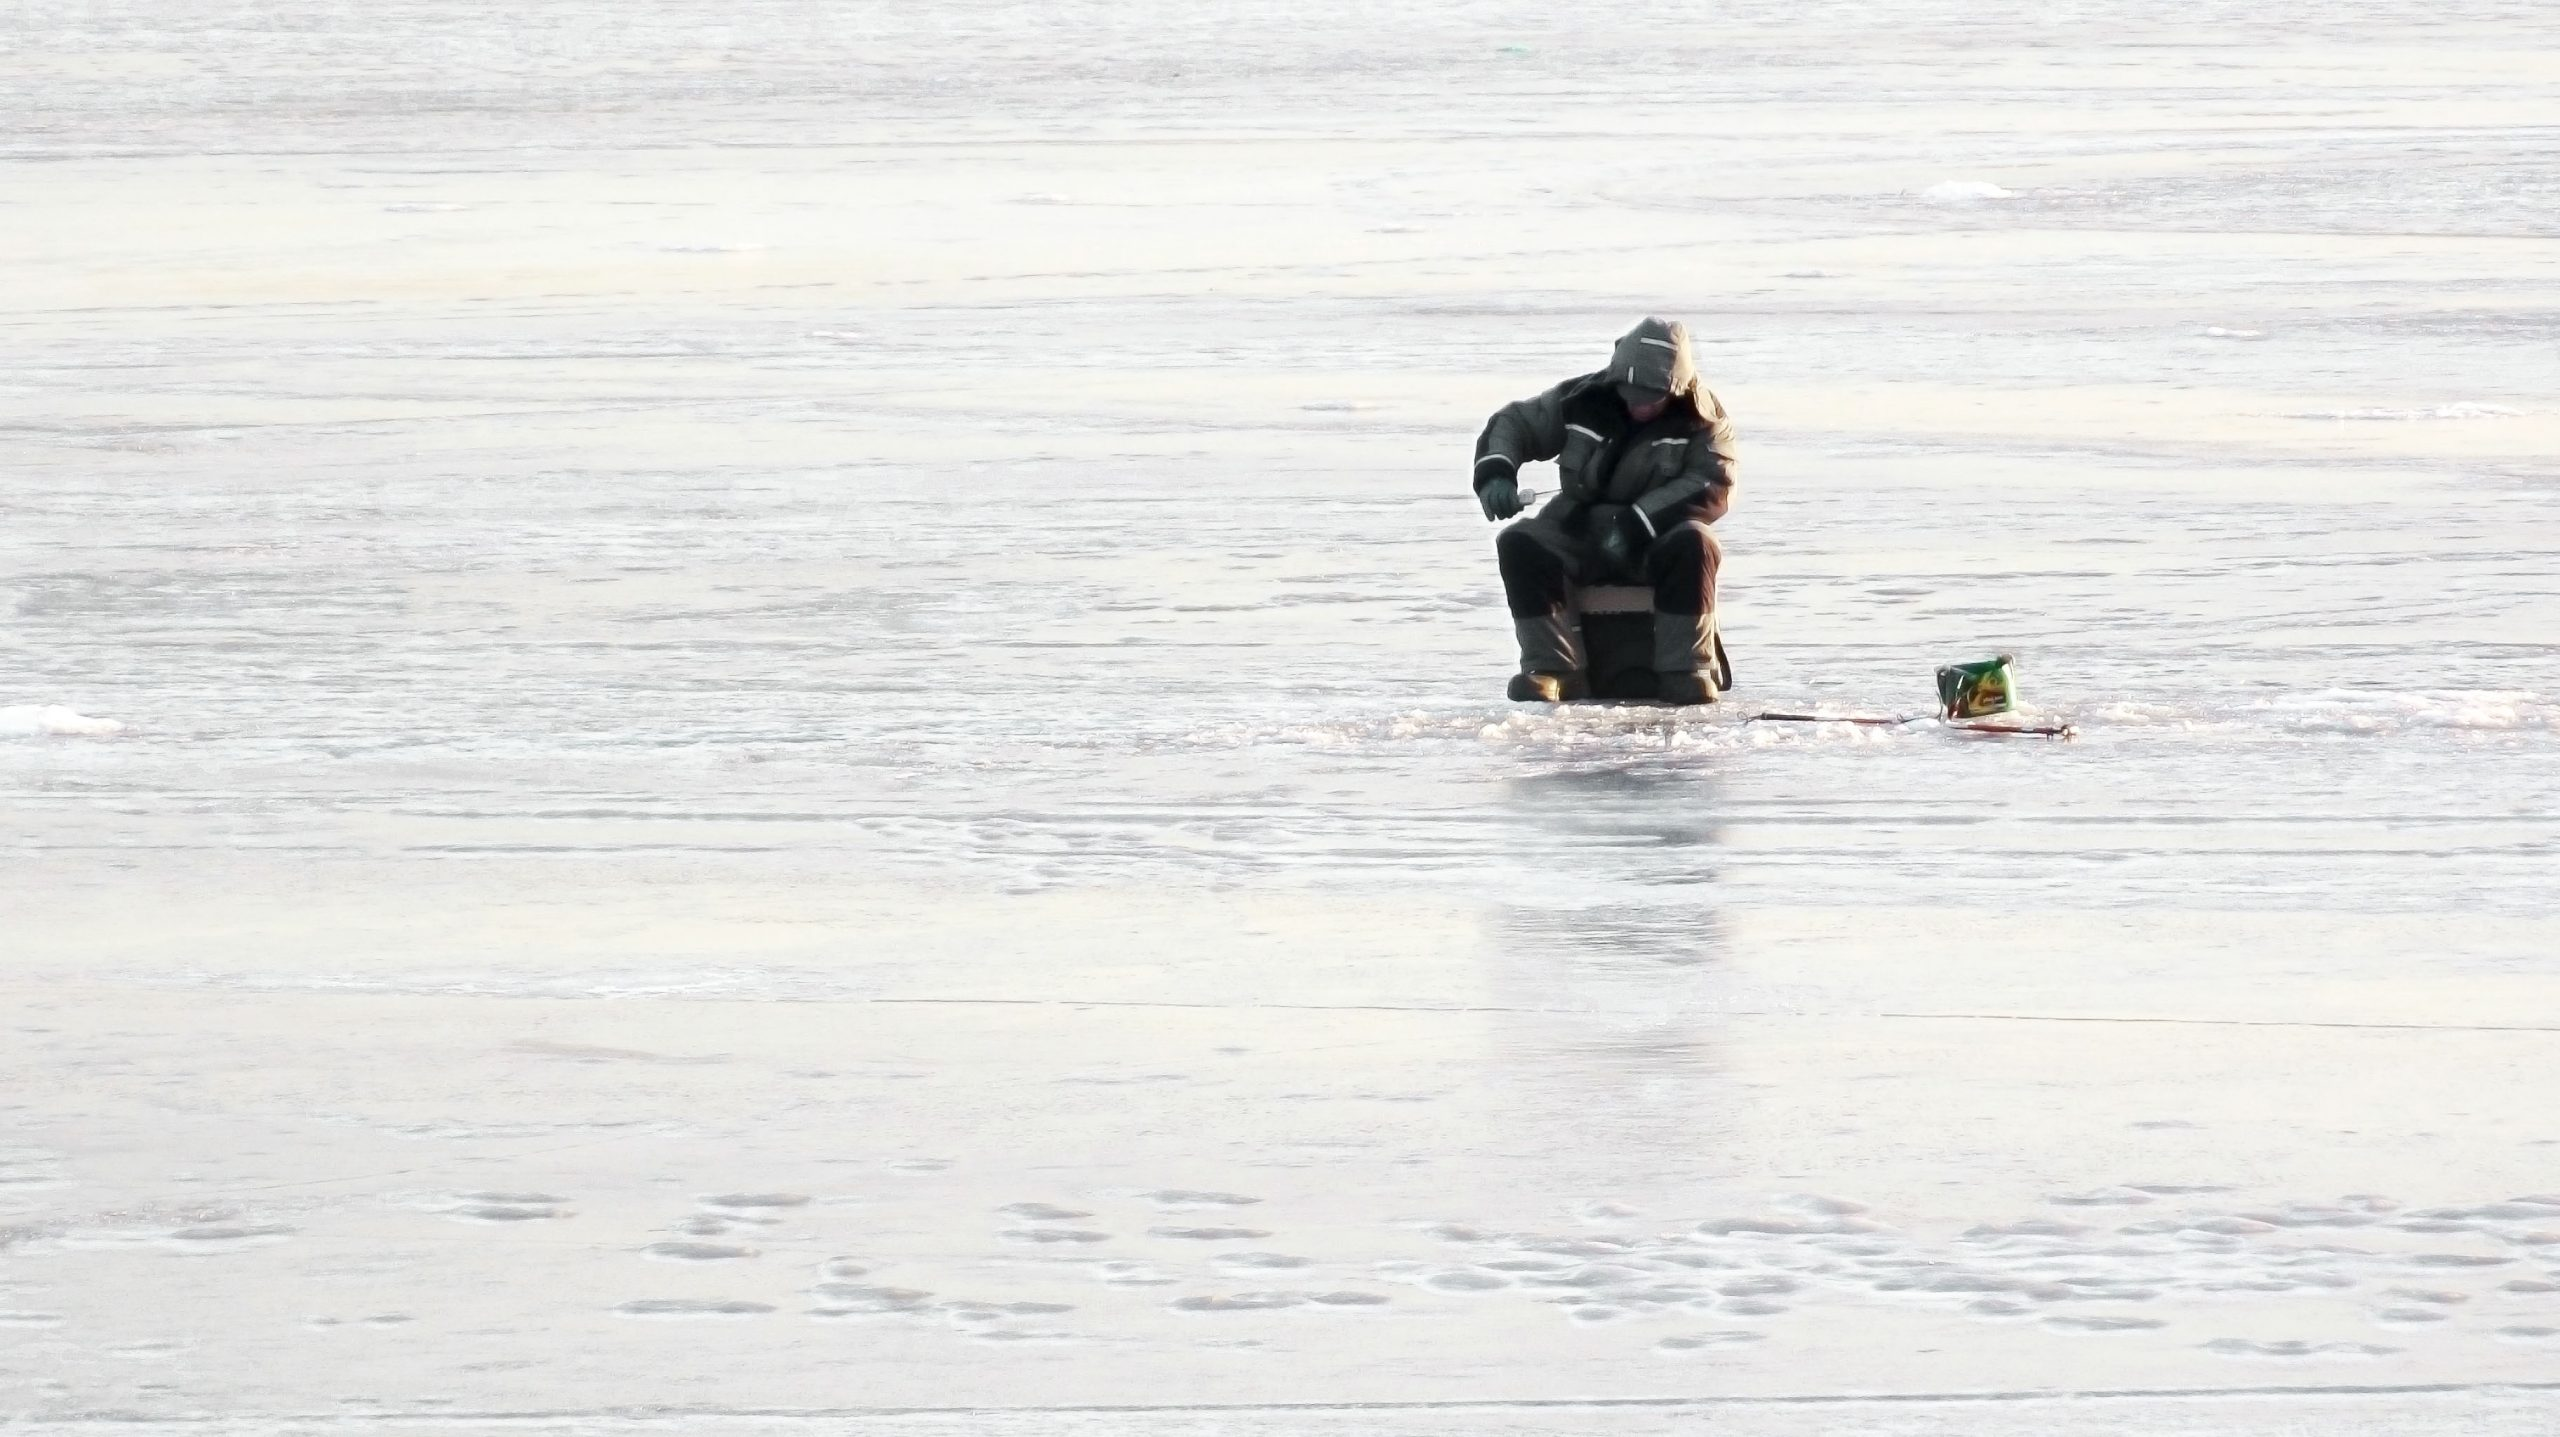 Image of man ice fishing indicating ideal duration in marketing campaigns